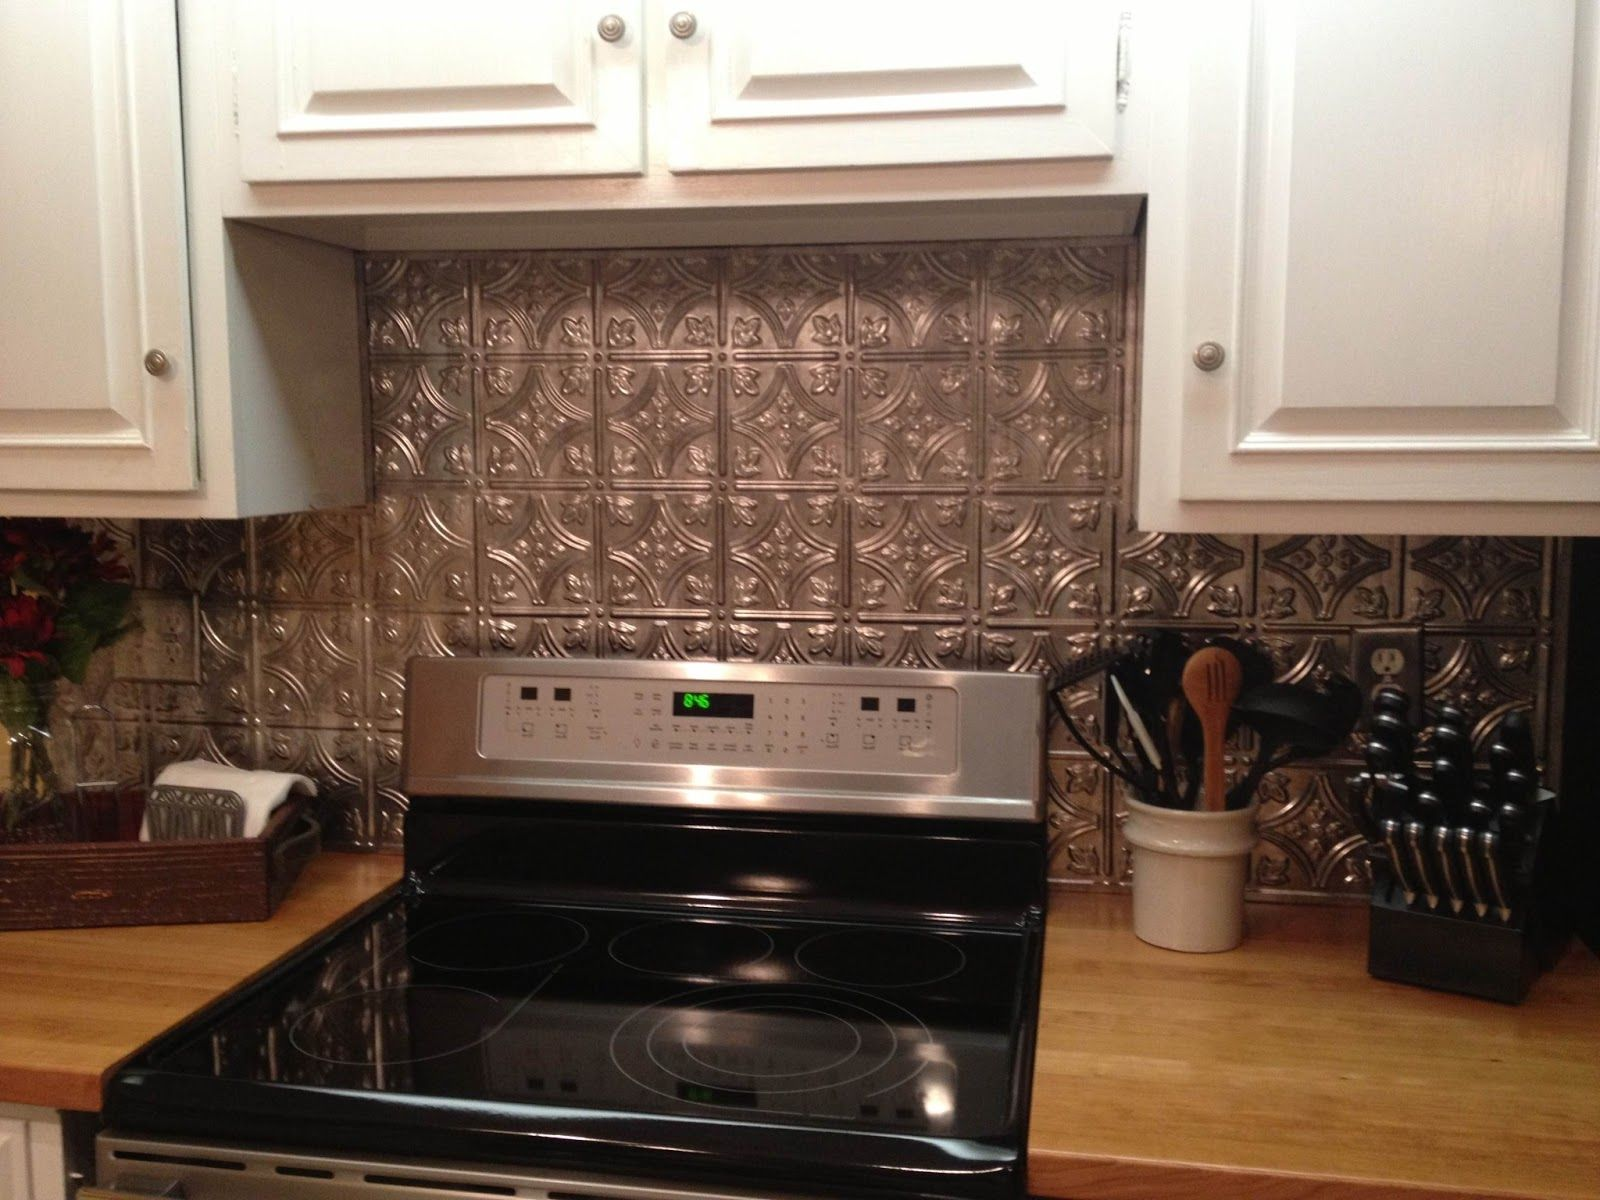 Diy Rustic Backsplash Cool Diy Faux Tin Kitchen Backsplash With Vase Top 12